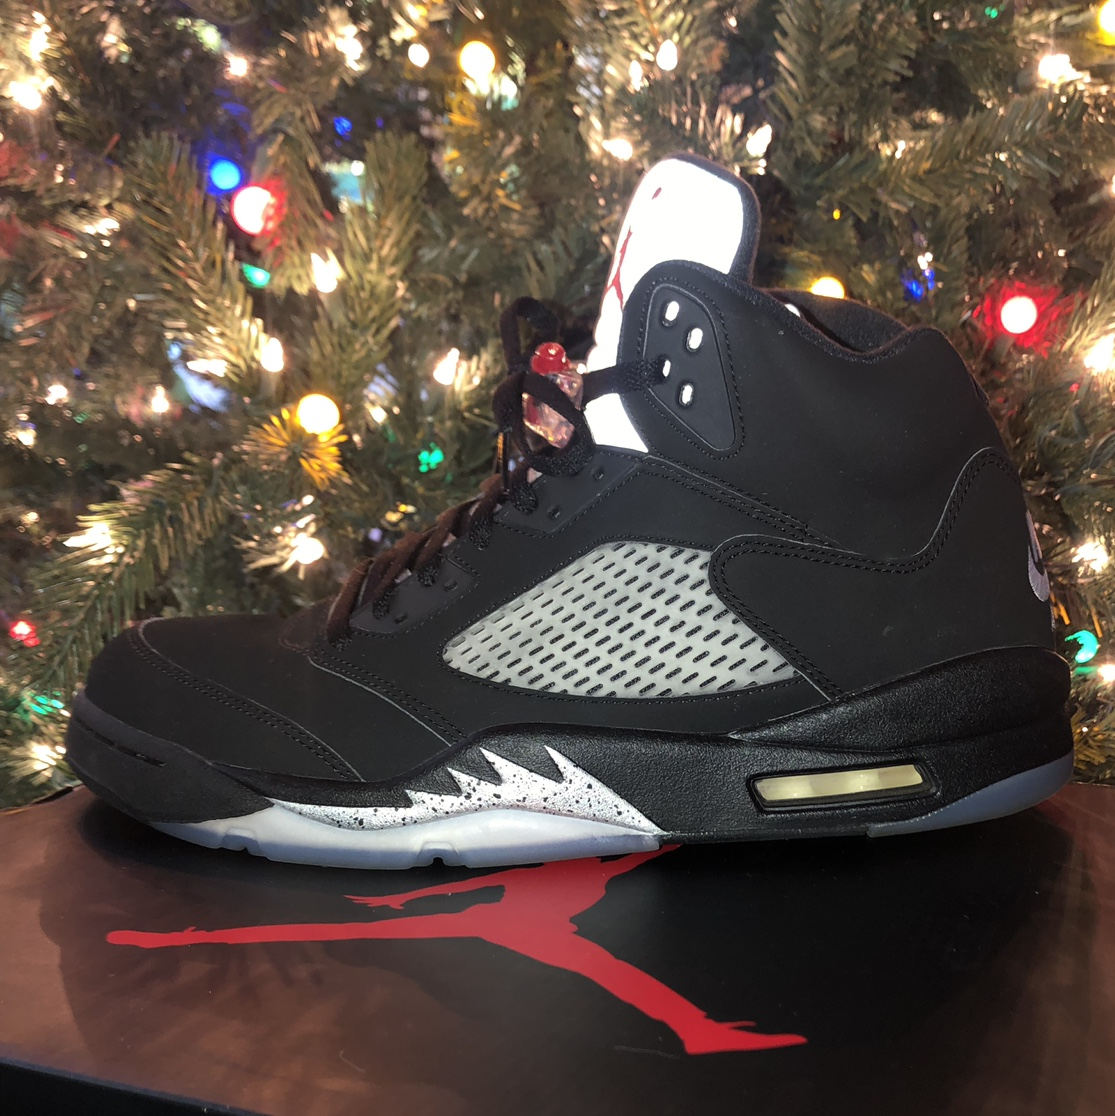 info for 20f2d 8765f AIR JORDAN 5 RETRO size: 12, true to size brand:... - Depop